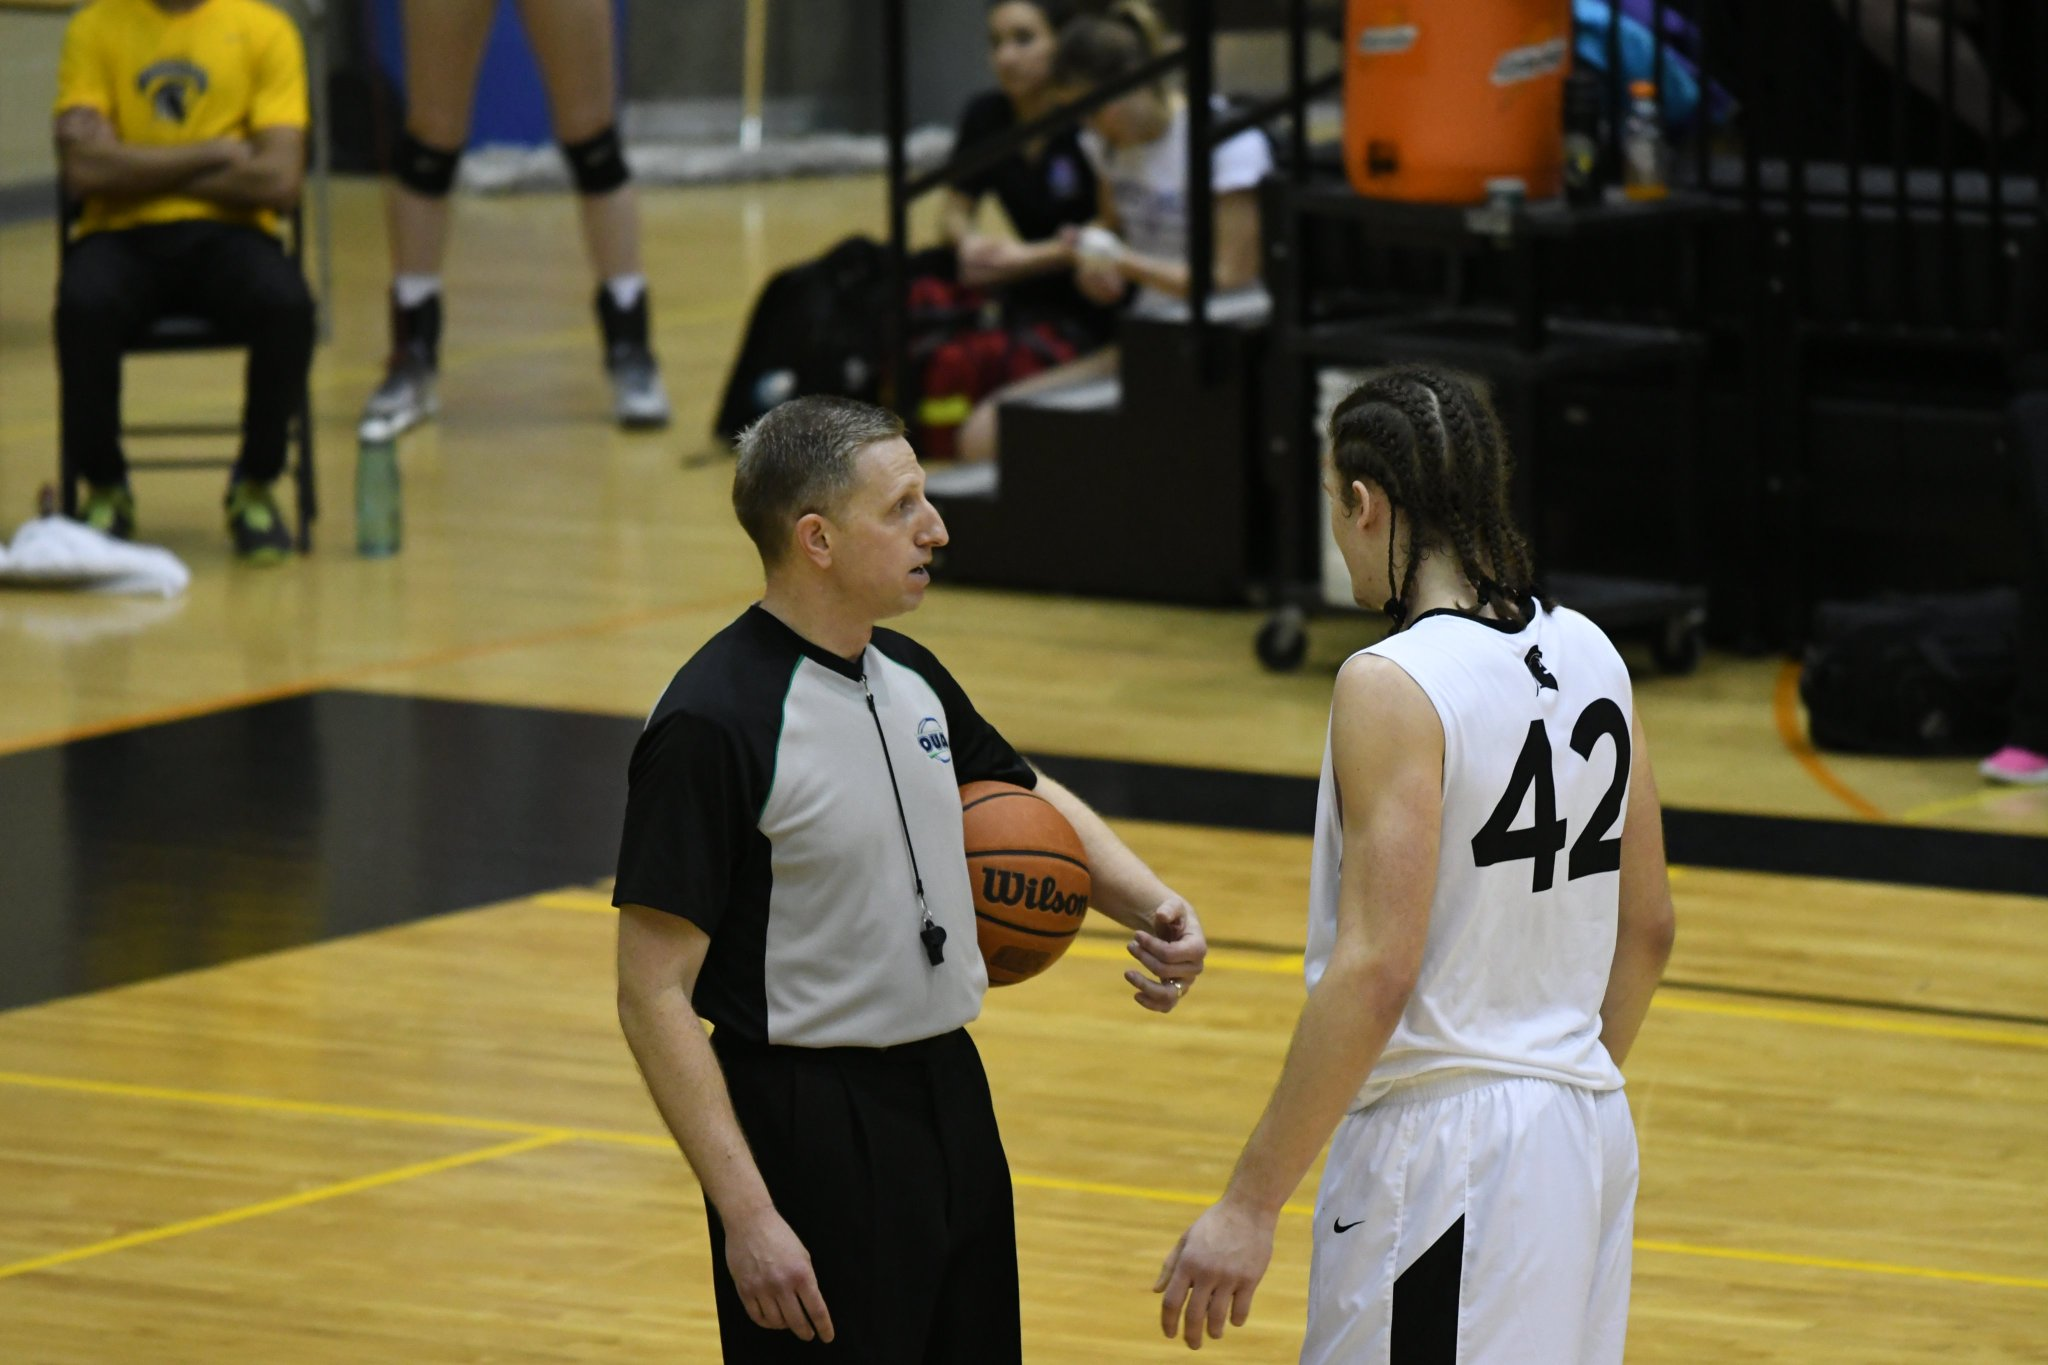 #42 @NEDIM__HODZIC of the @WlooWarriors talks it over with the ref at #UWaterlooFAD. https://t.co/gWYOaXGiEM